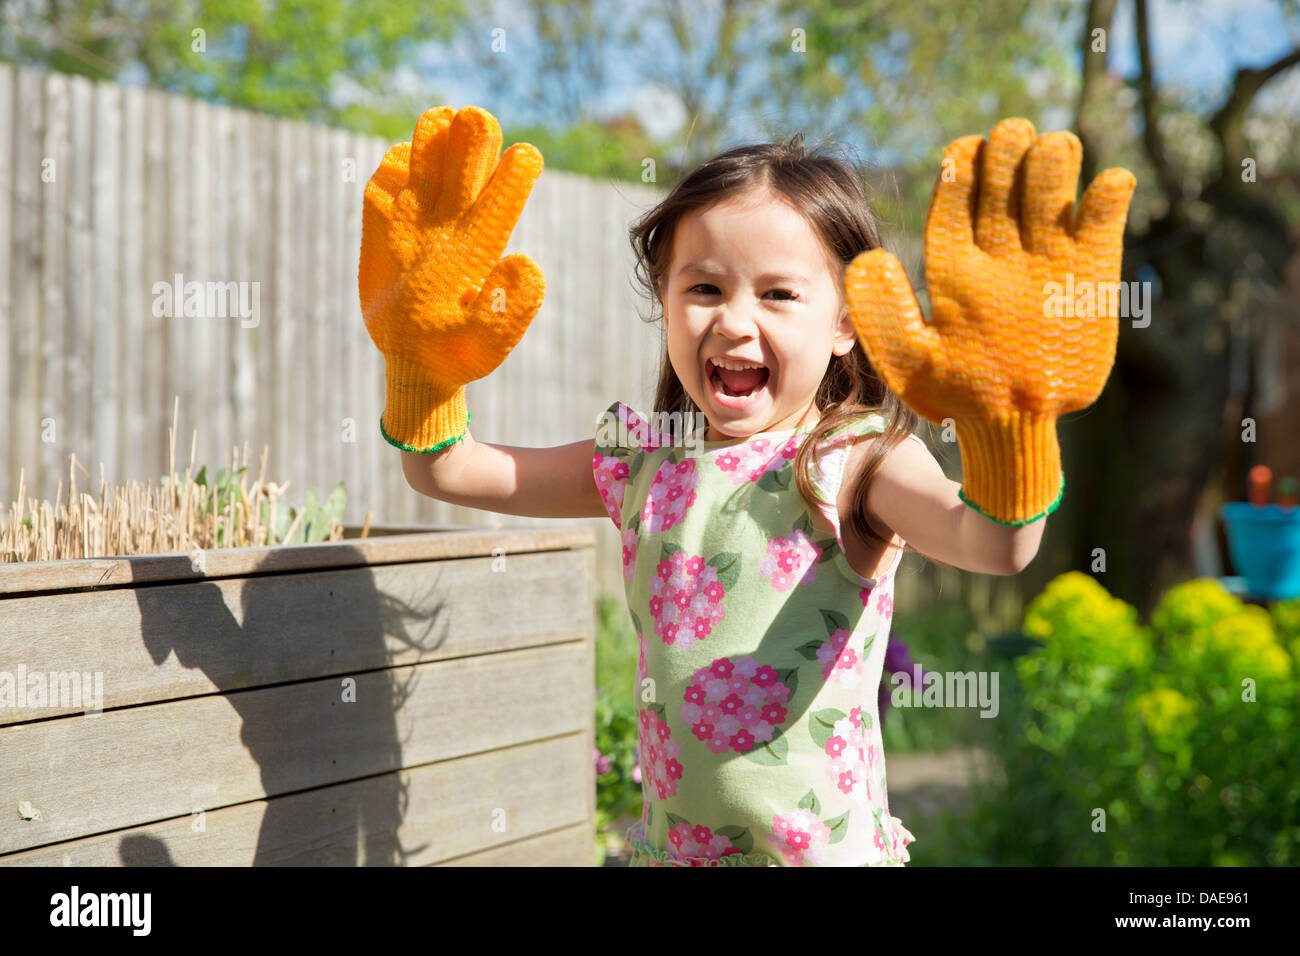 Young girl in garden wearing oversized gloves - Stock Image